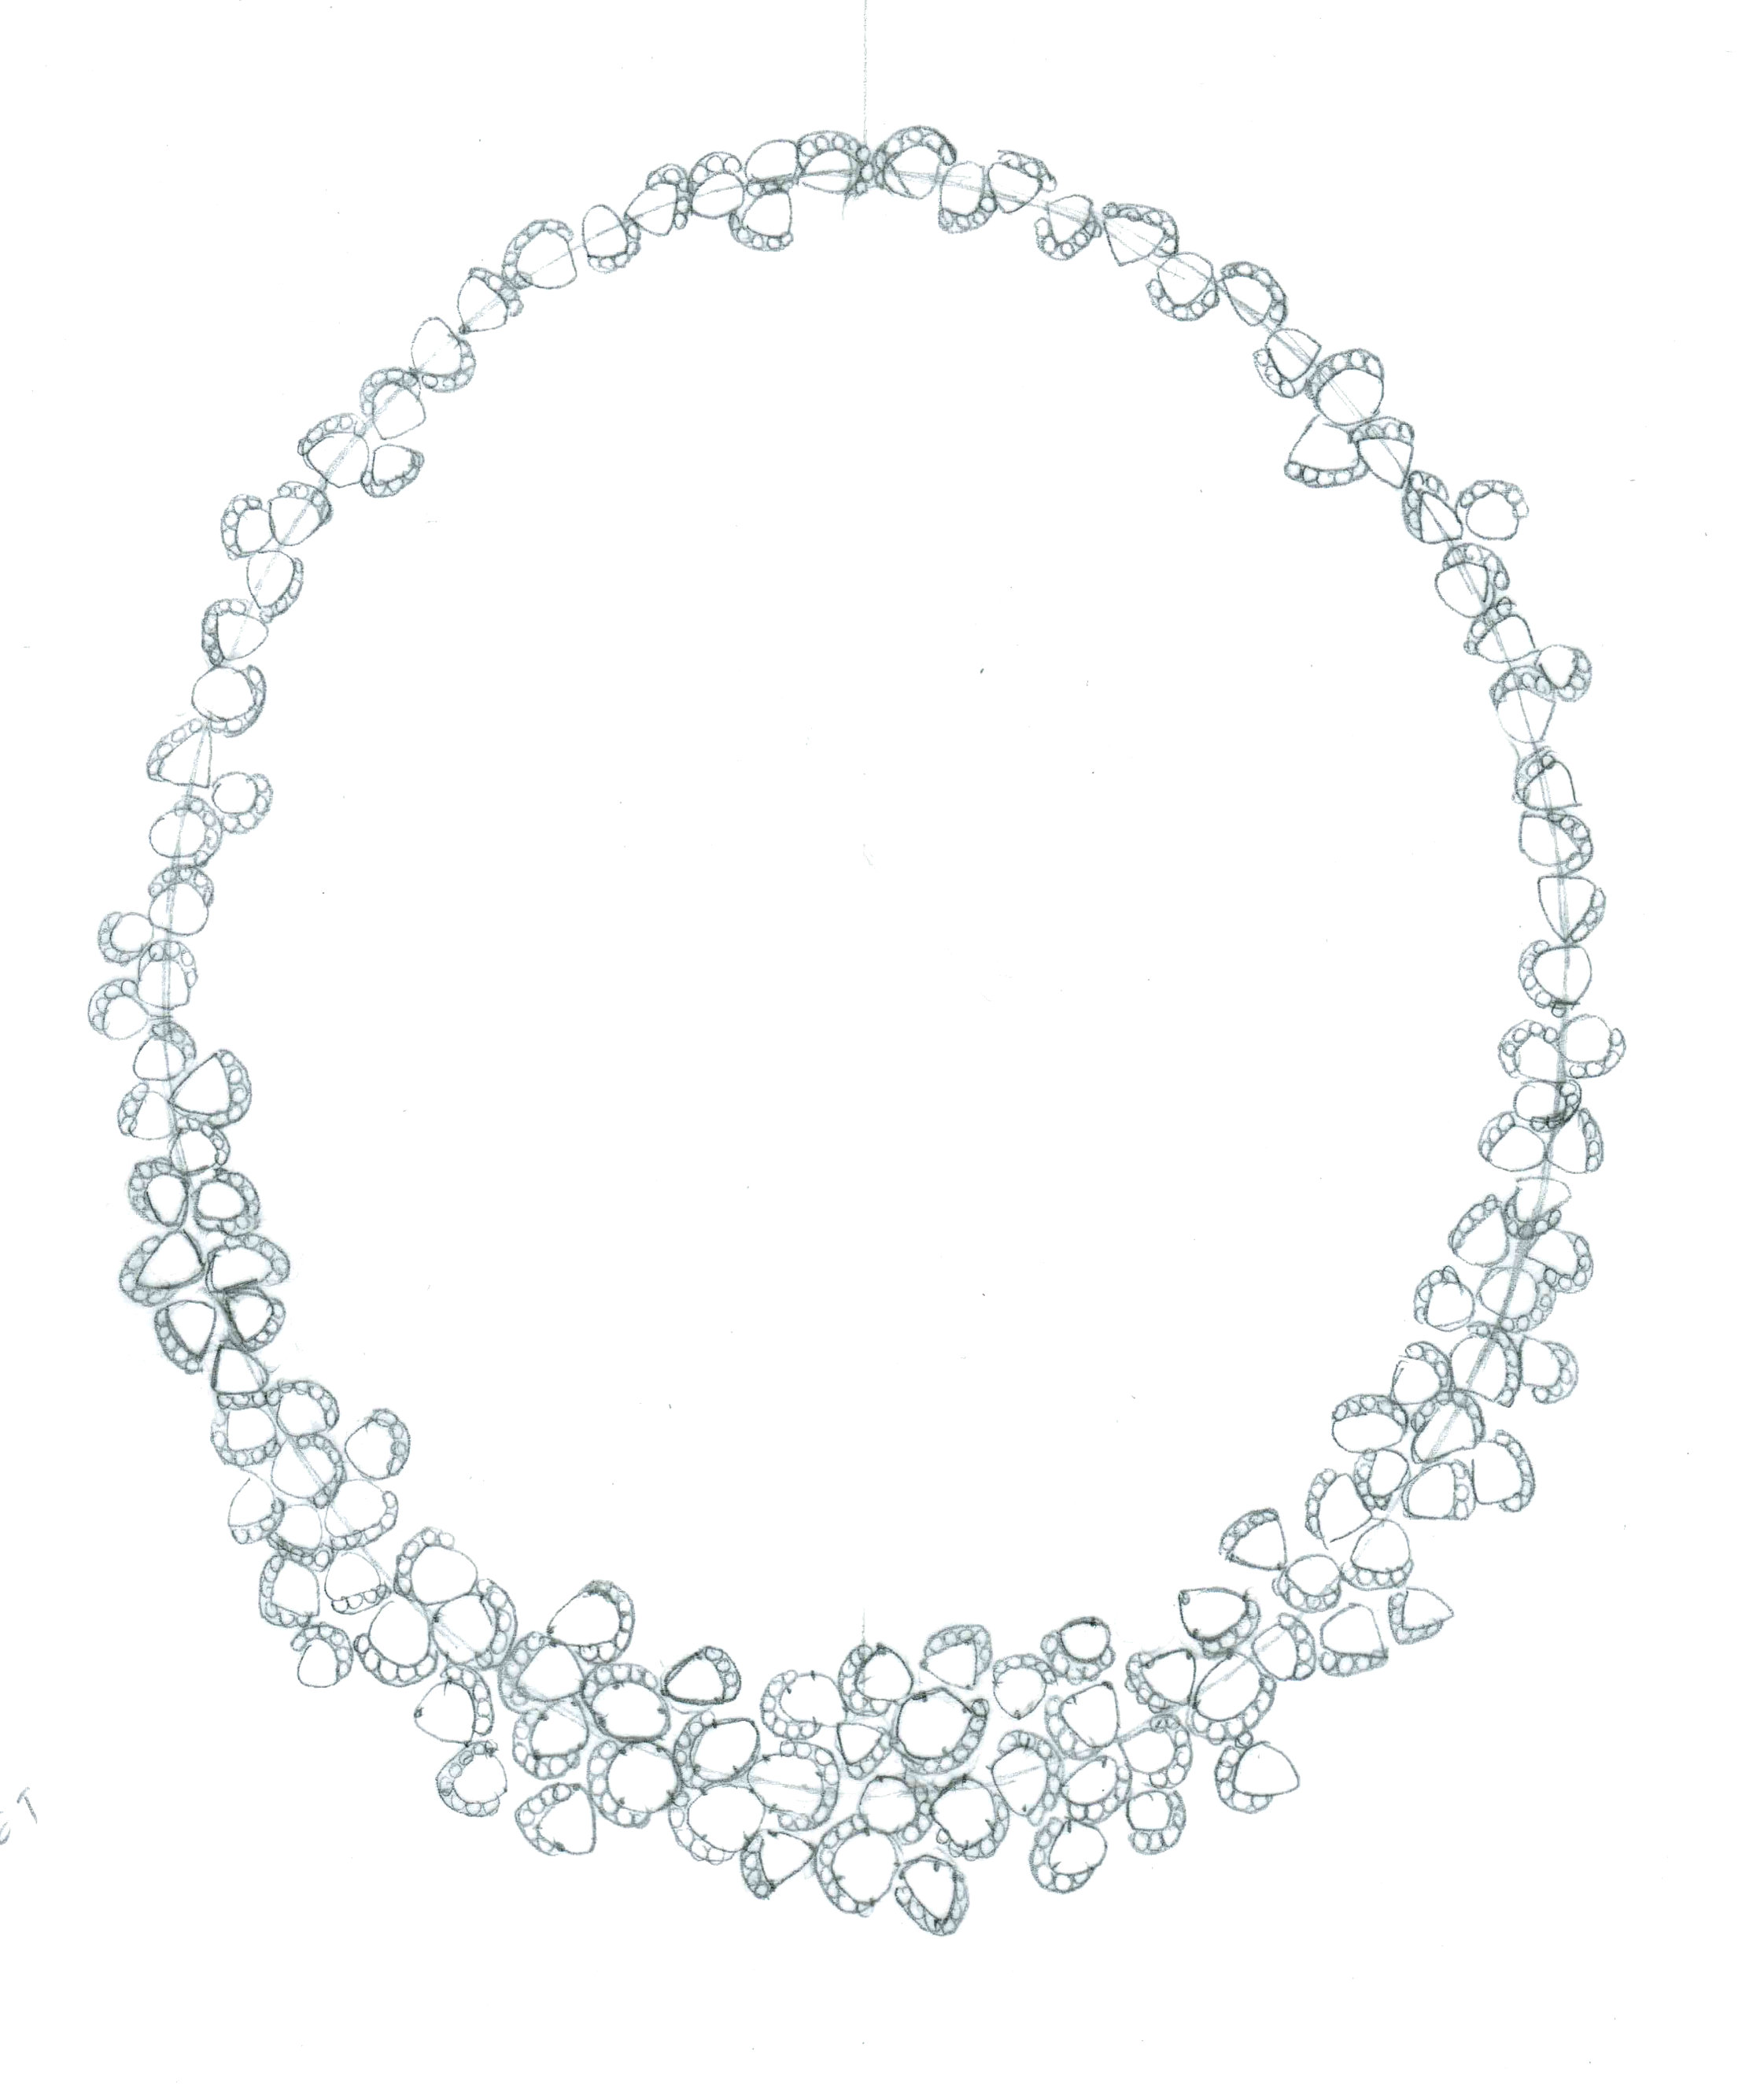 2242x2656 Champagne Bubbles Wreath Necklace Drawing.